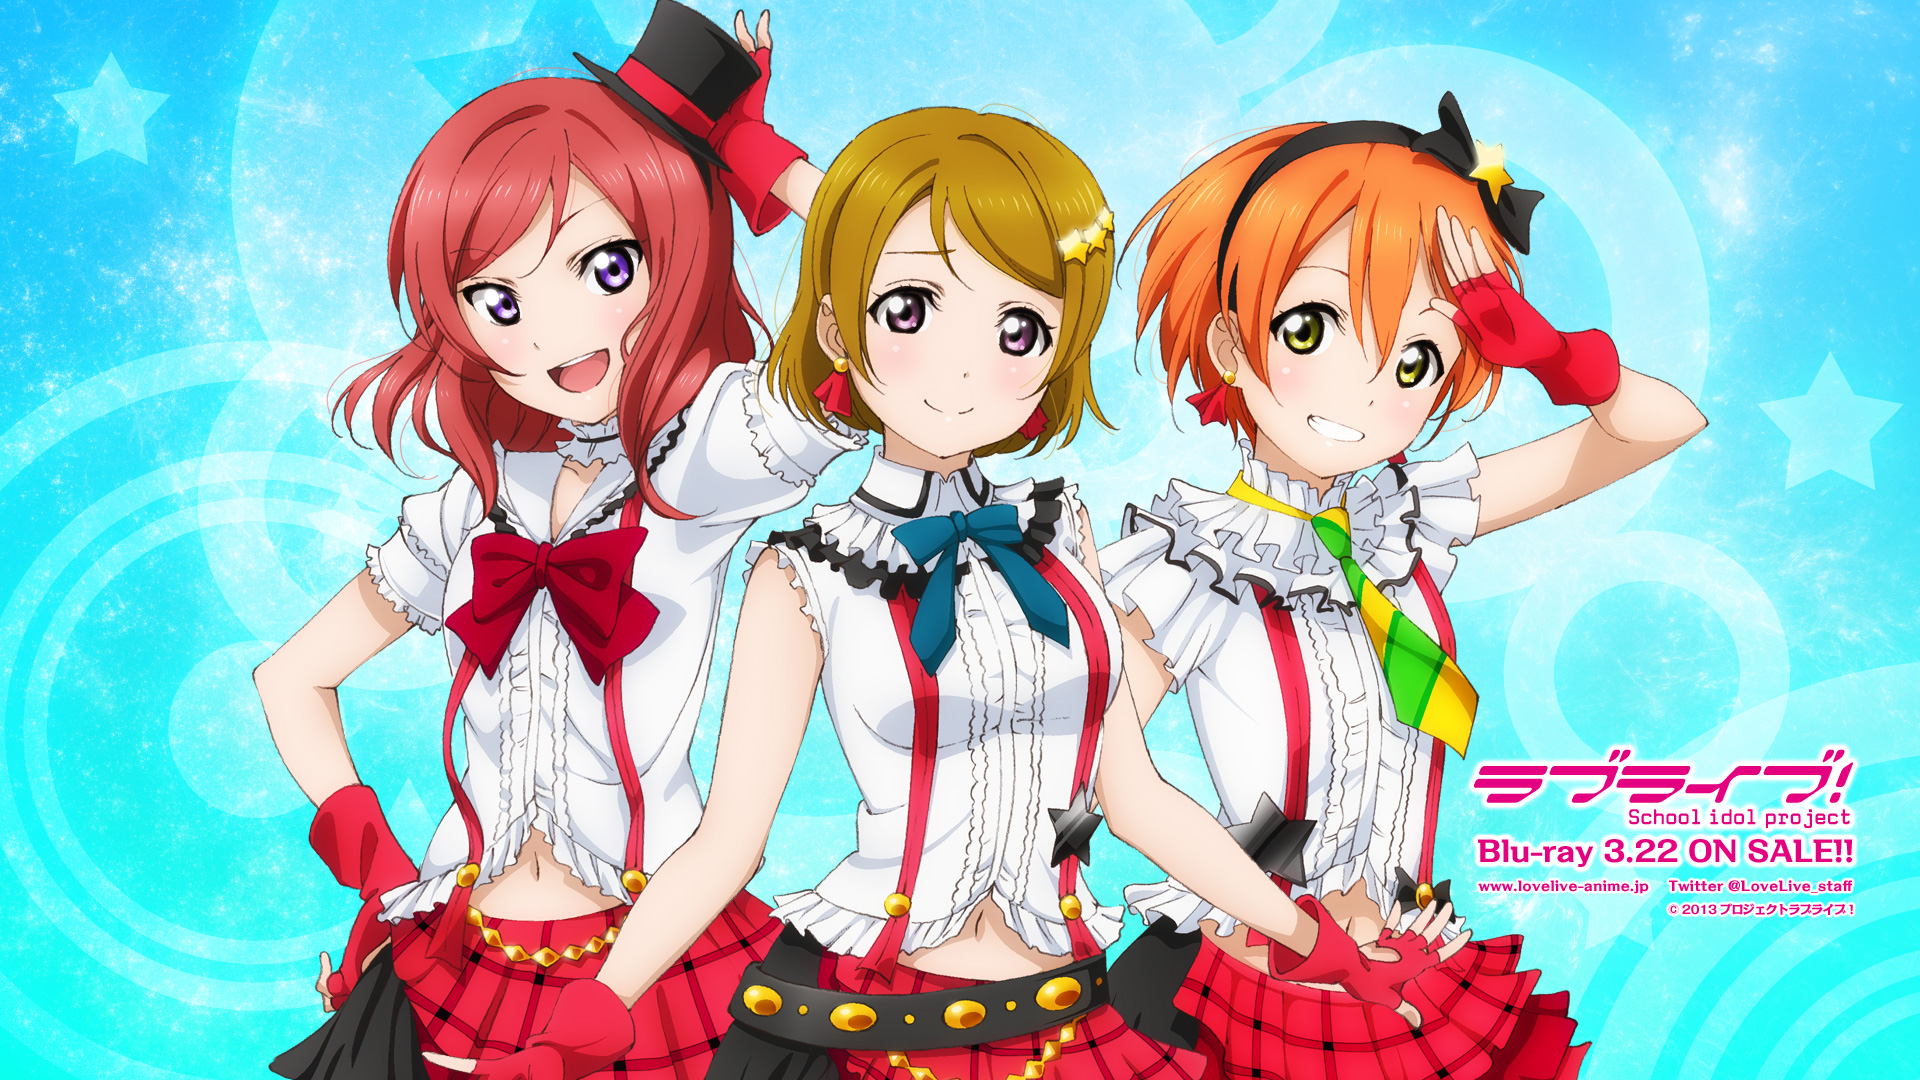 Love Live Wallpaper Hd For Pc : Love Live! HD Wallpaper #1437742 - Zerochan Anime Image Board